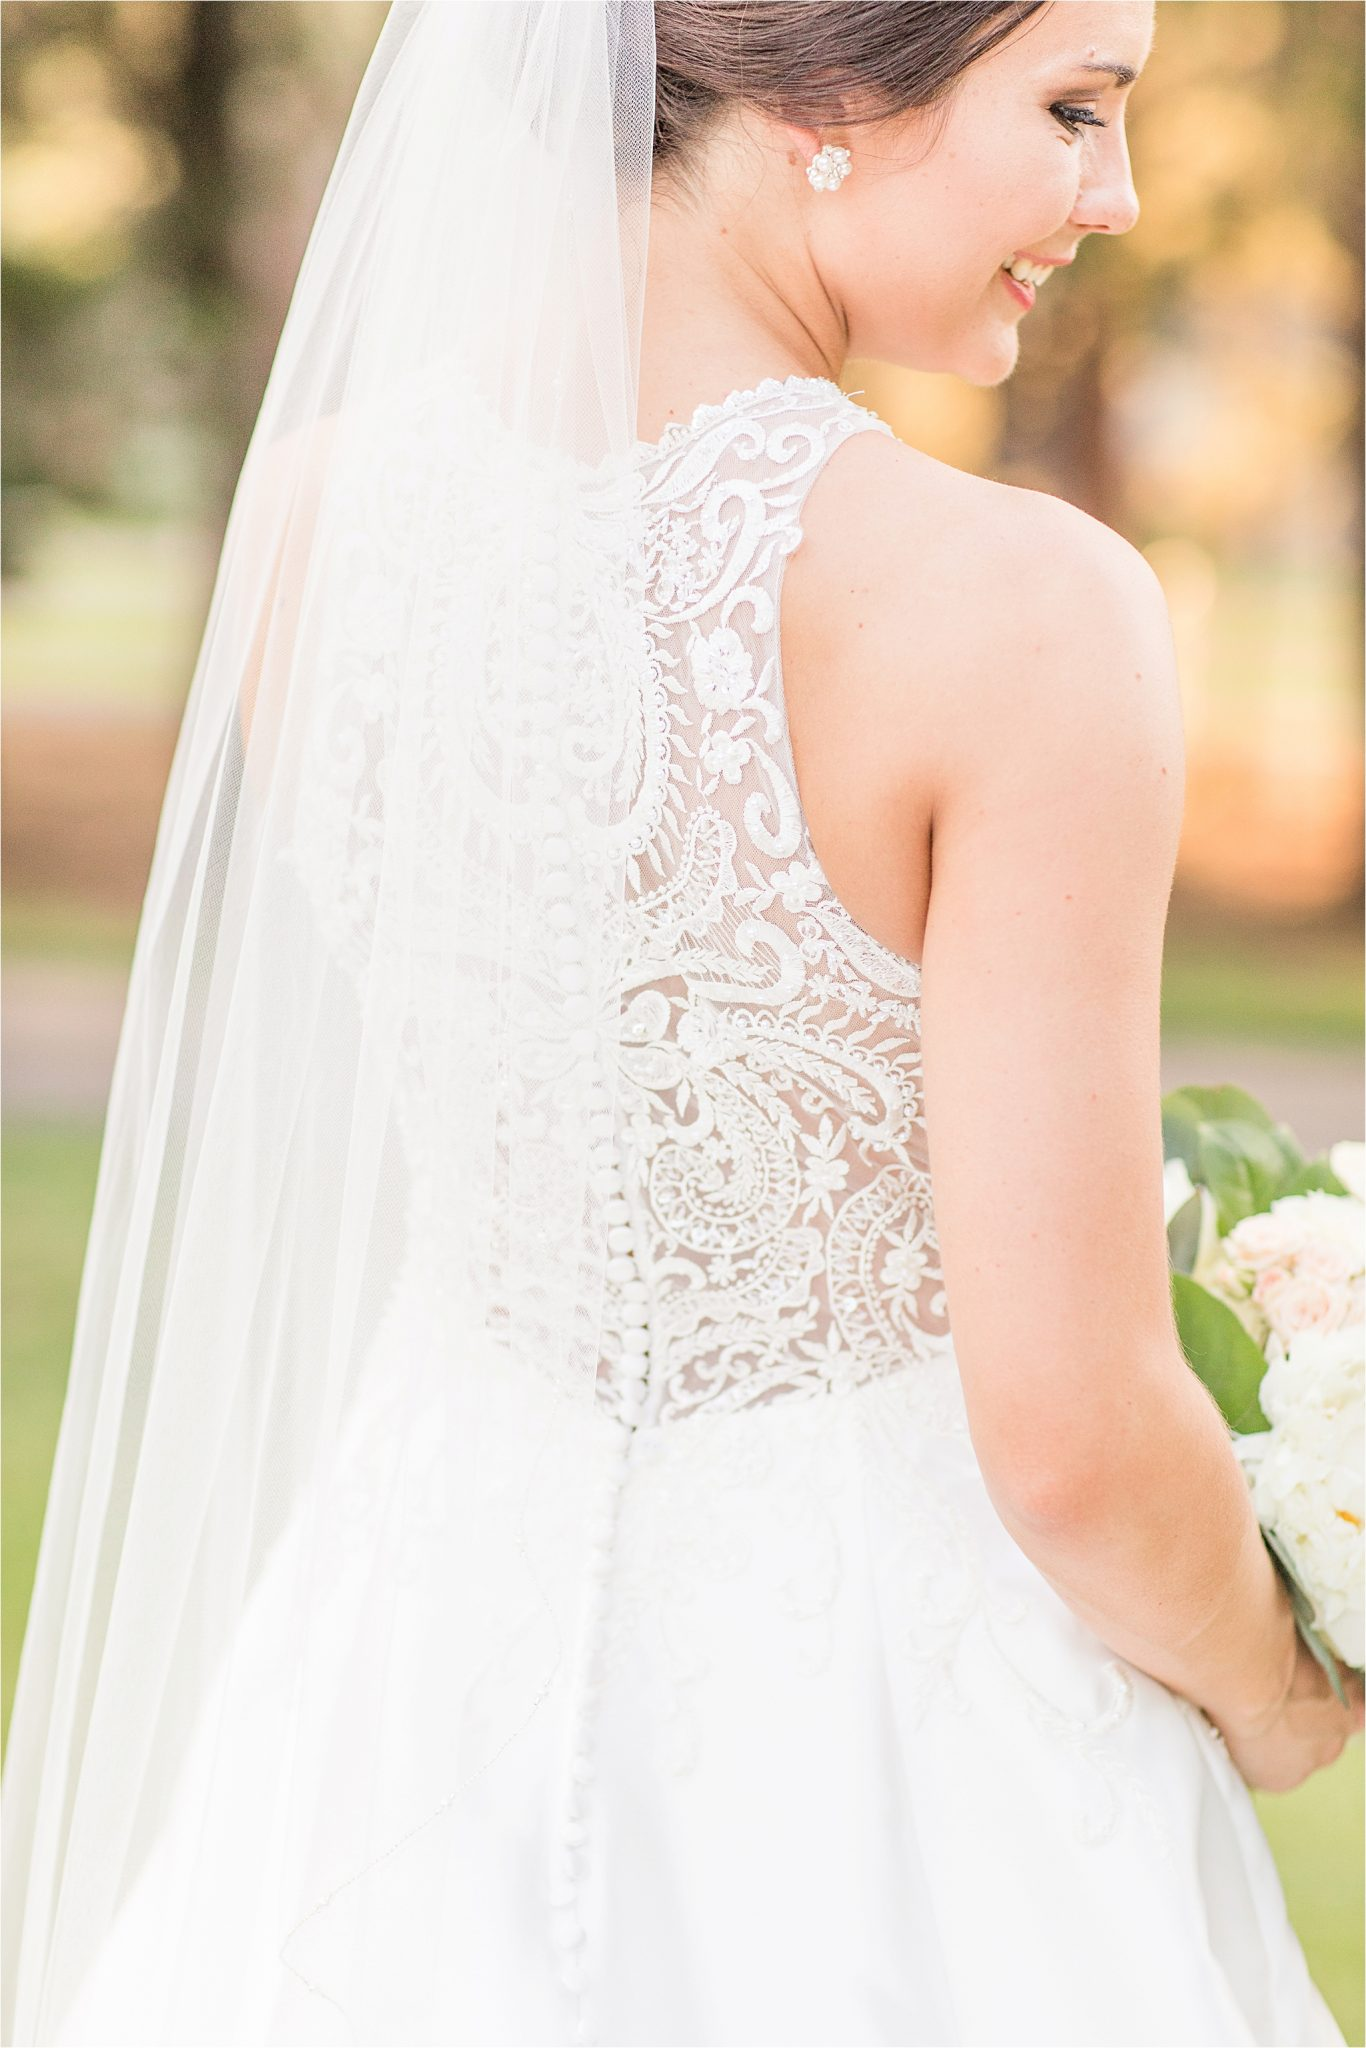 Sonnet House, Birmingham Alabama Wedding Photographer, Bridal portraits